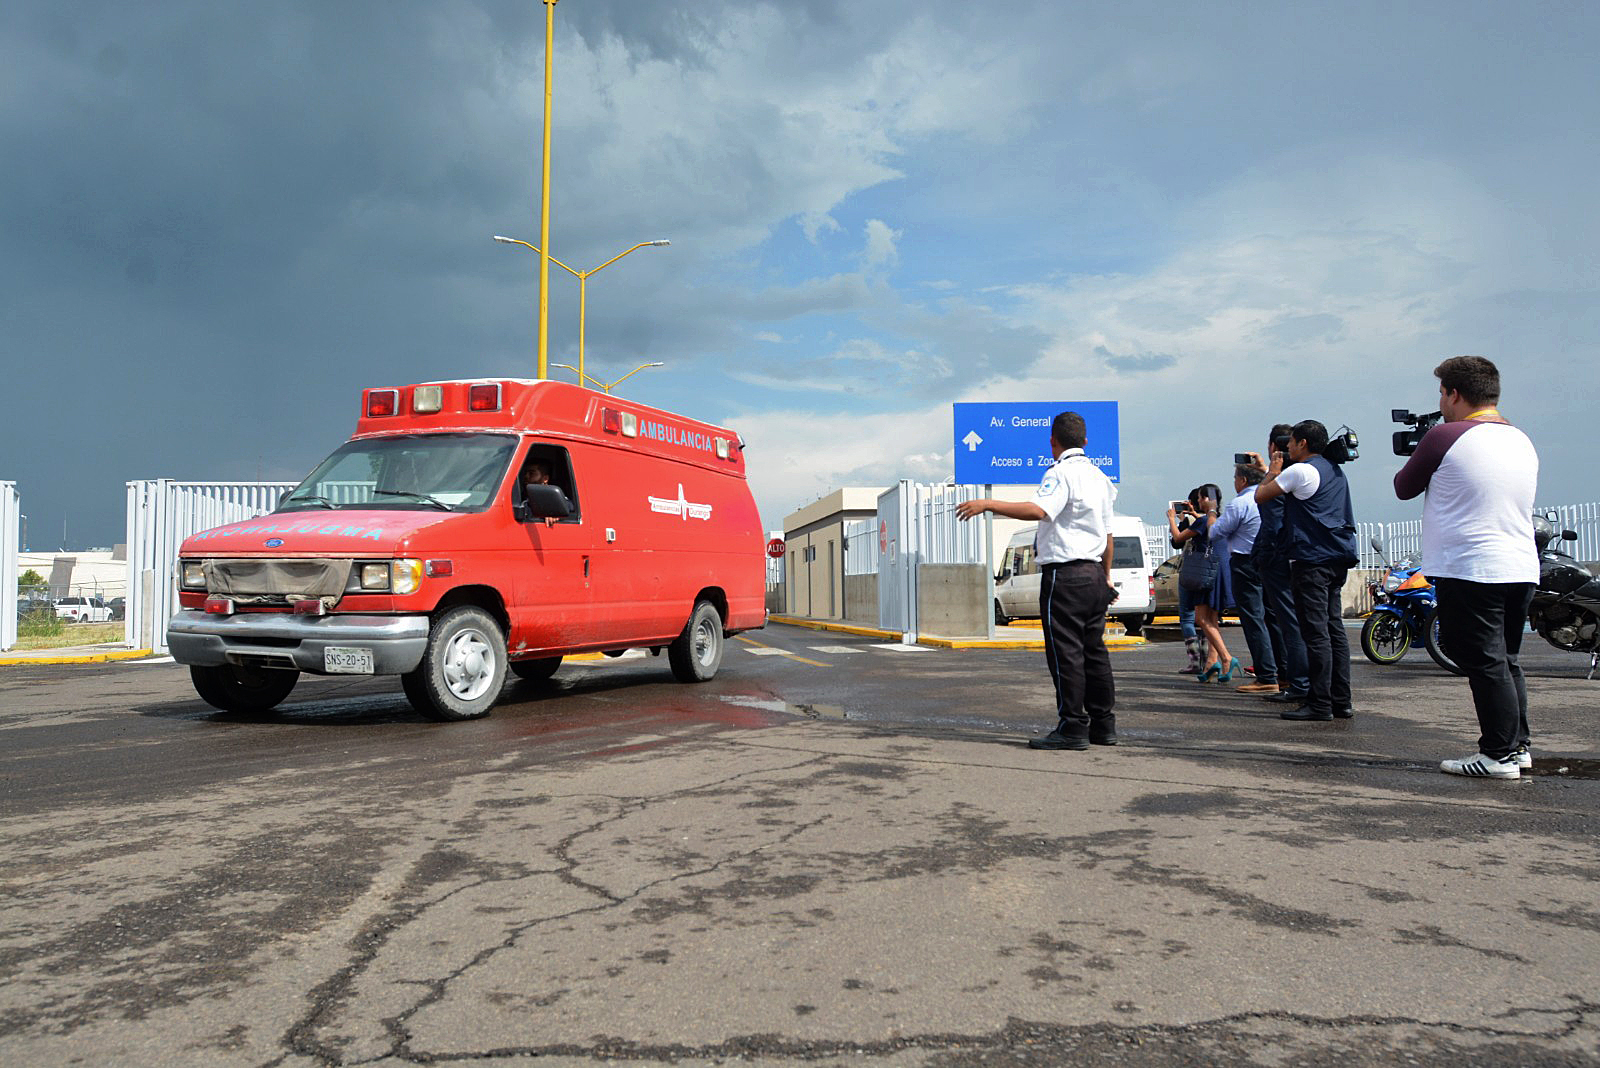 An ambulance is seen at the airport of Durango, in northern Mexico, after a plane crashed during take off on July 31, 2018. (Credit: LULU MURILLO/AFP/Getty Images)